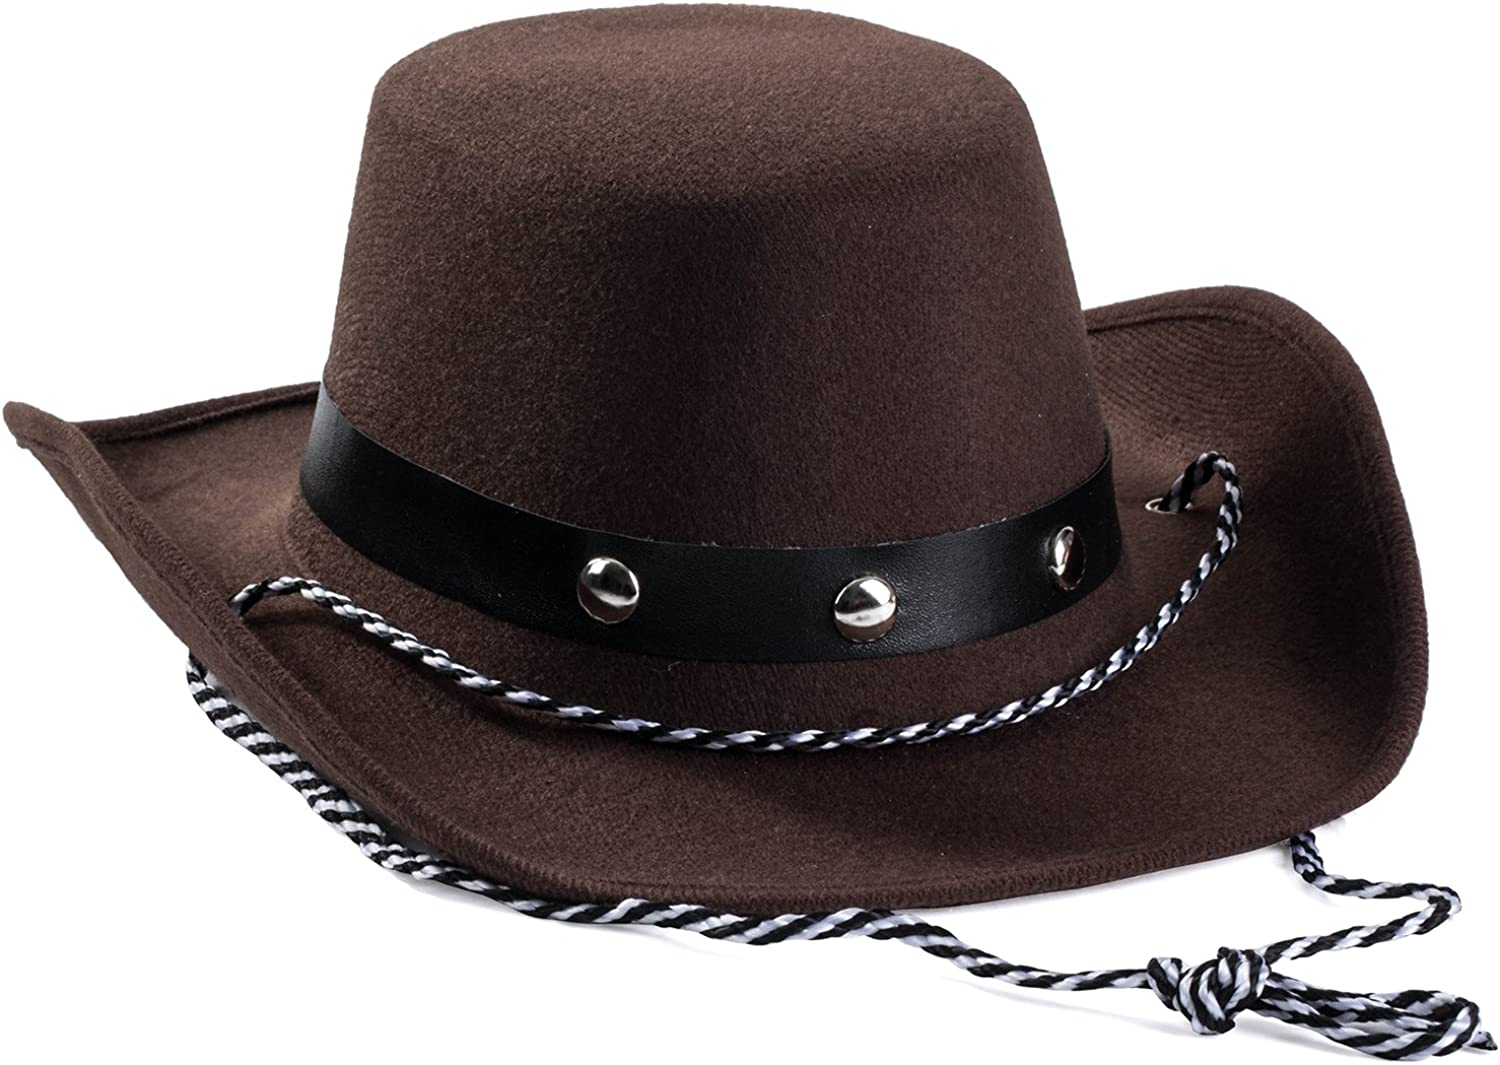 Funny Party Hats Baby Cowboy Hat - Cowboy Hat Toddler – Studded Cowboy Hat - Brown Felt Cowboy Hat - Cowboy Accessories: Clothing